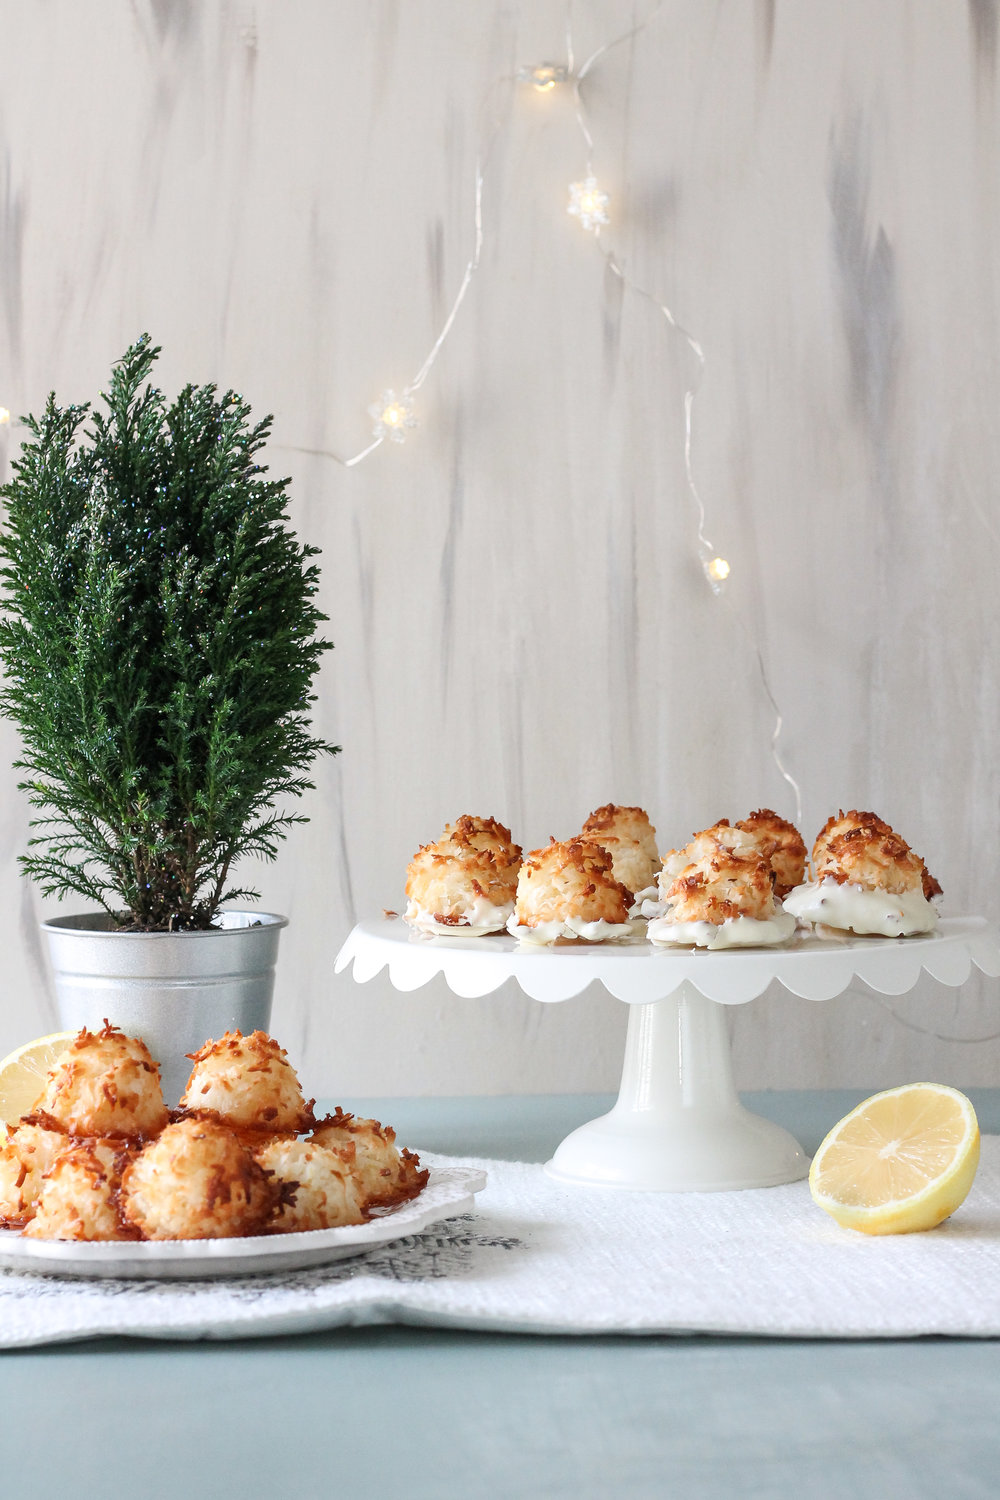 These super simple lemon coconut macaroons are sure to be the star of this year's cookie swap!  Find the recipe on www.pedanticfoodie.com!